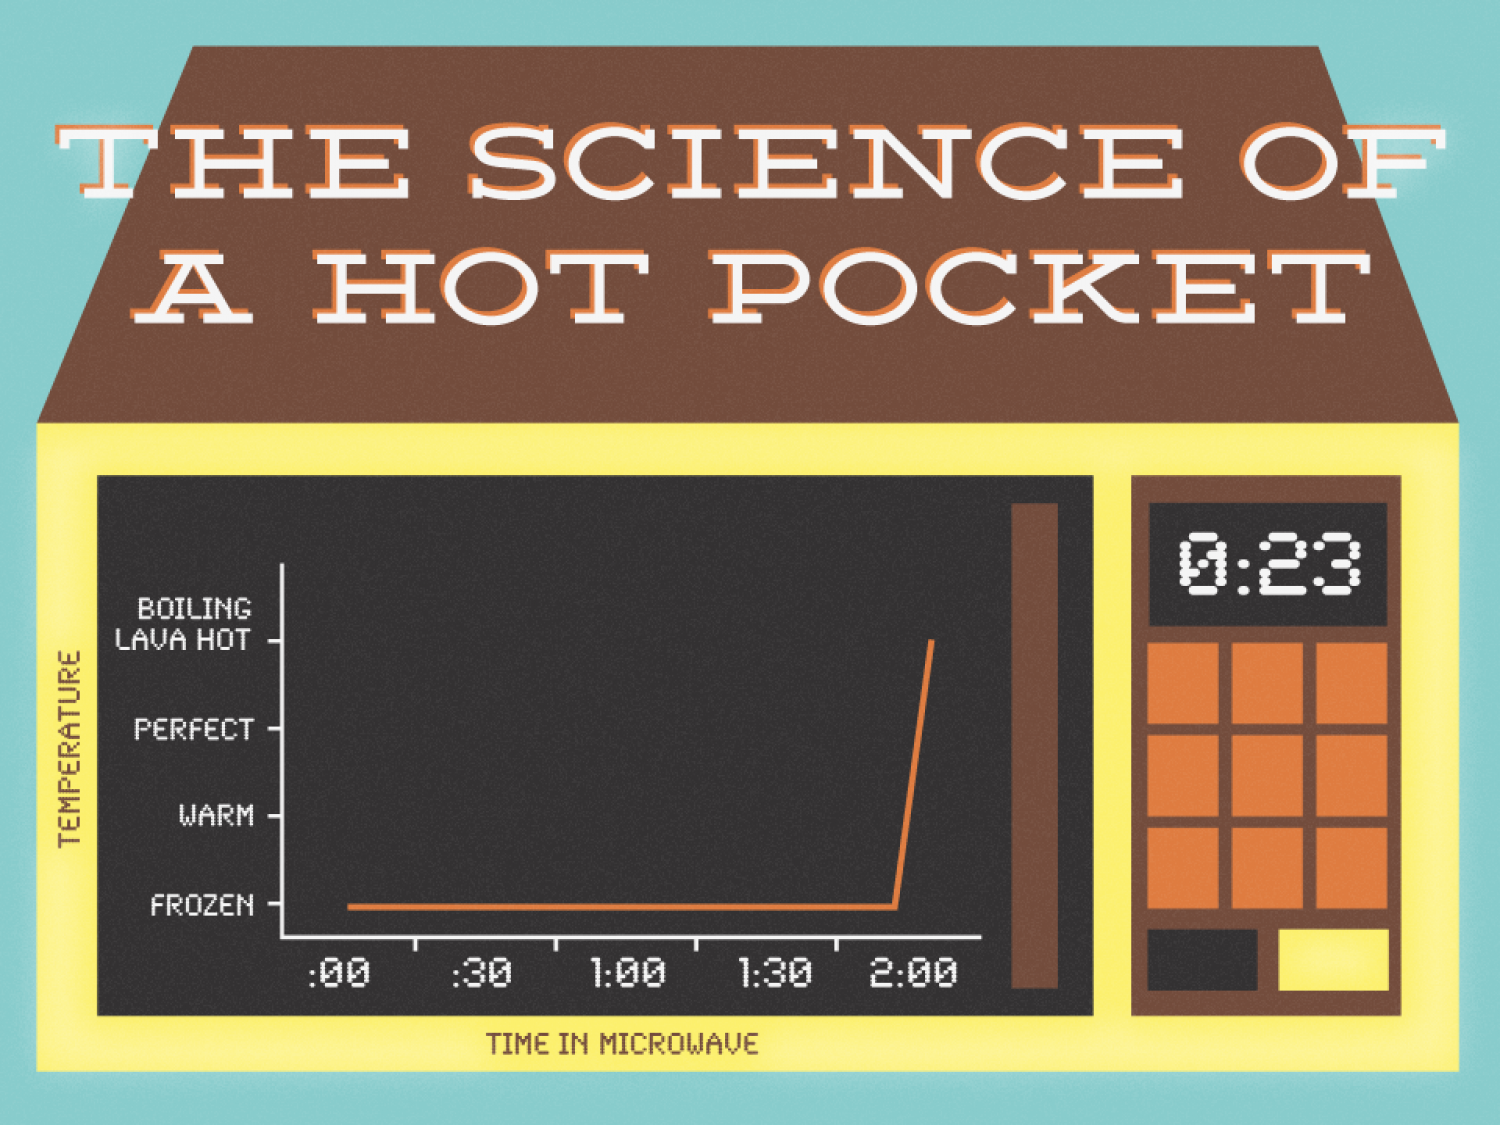 Data + Design Project - May - The Science of a Hot Pocket Infographic